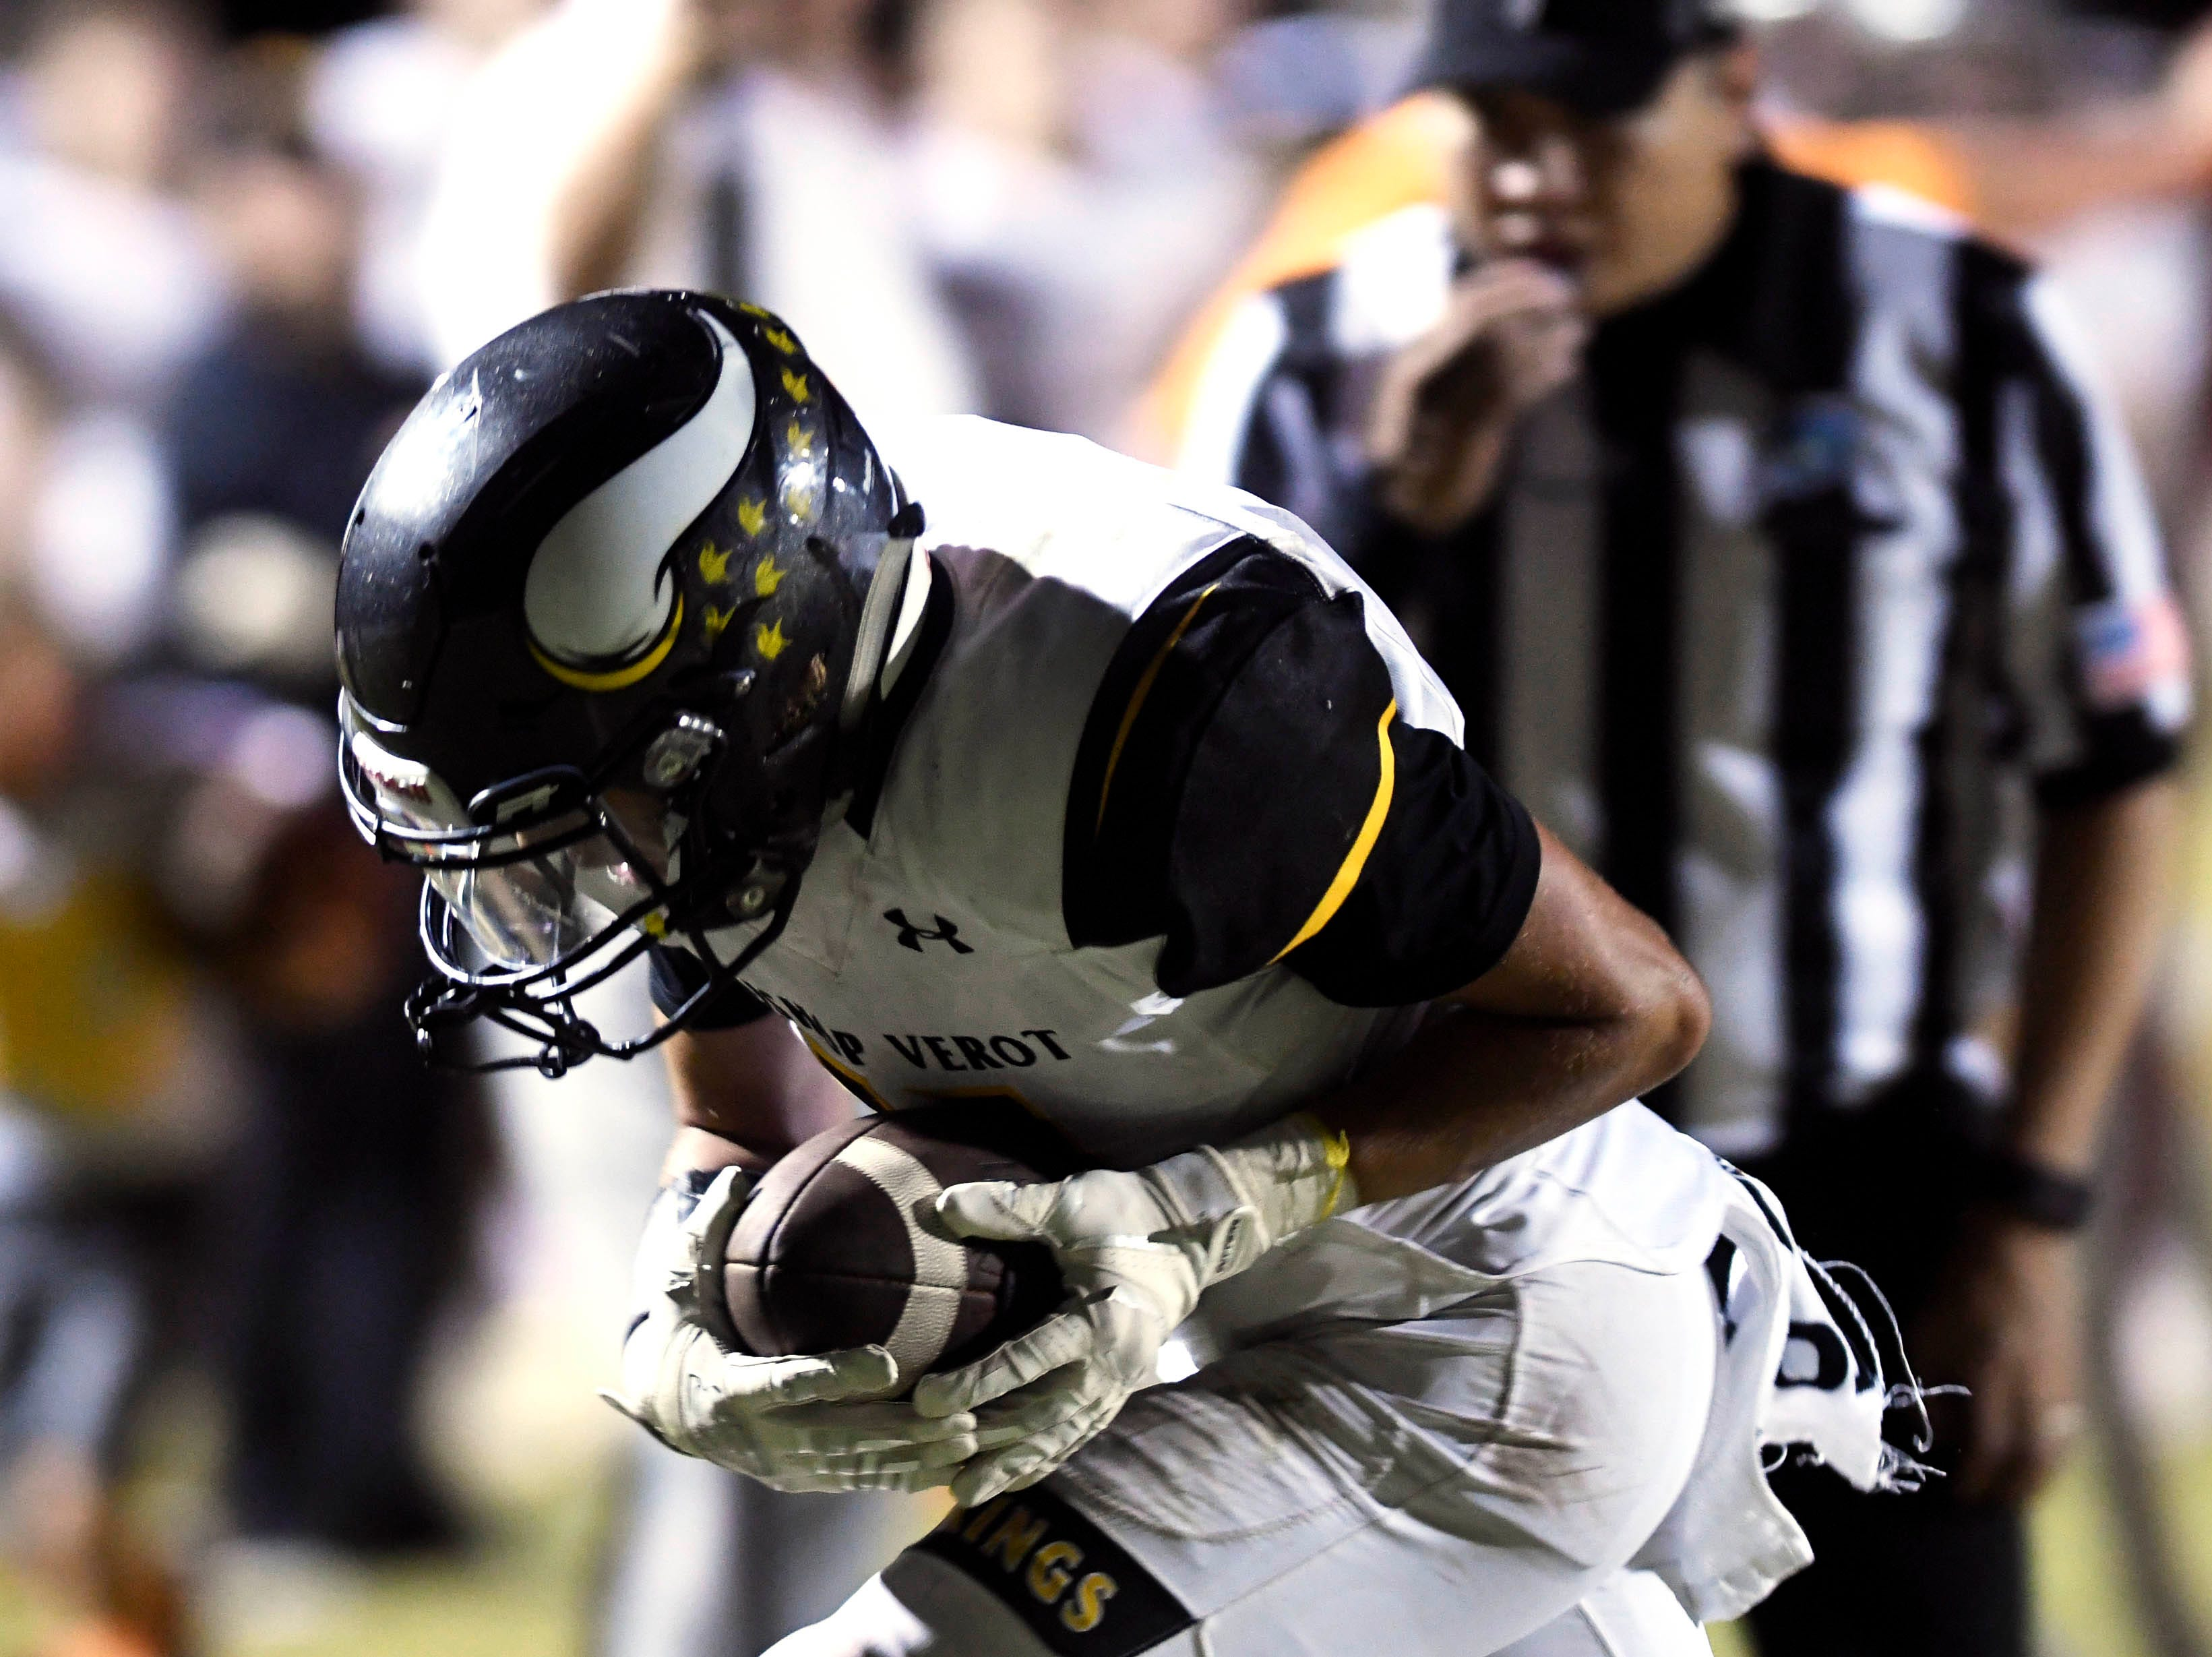 Jaidin Brown of Bishop Verot catches a pass for a touchdown during Friday's game against Cocoa.